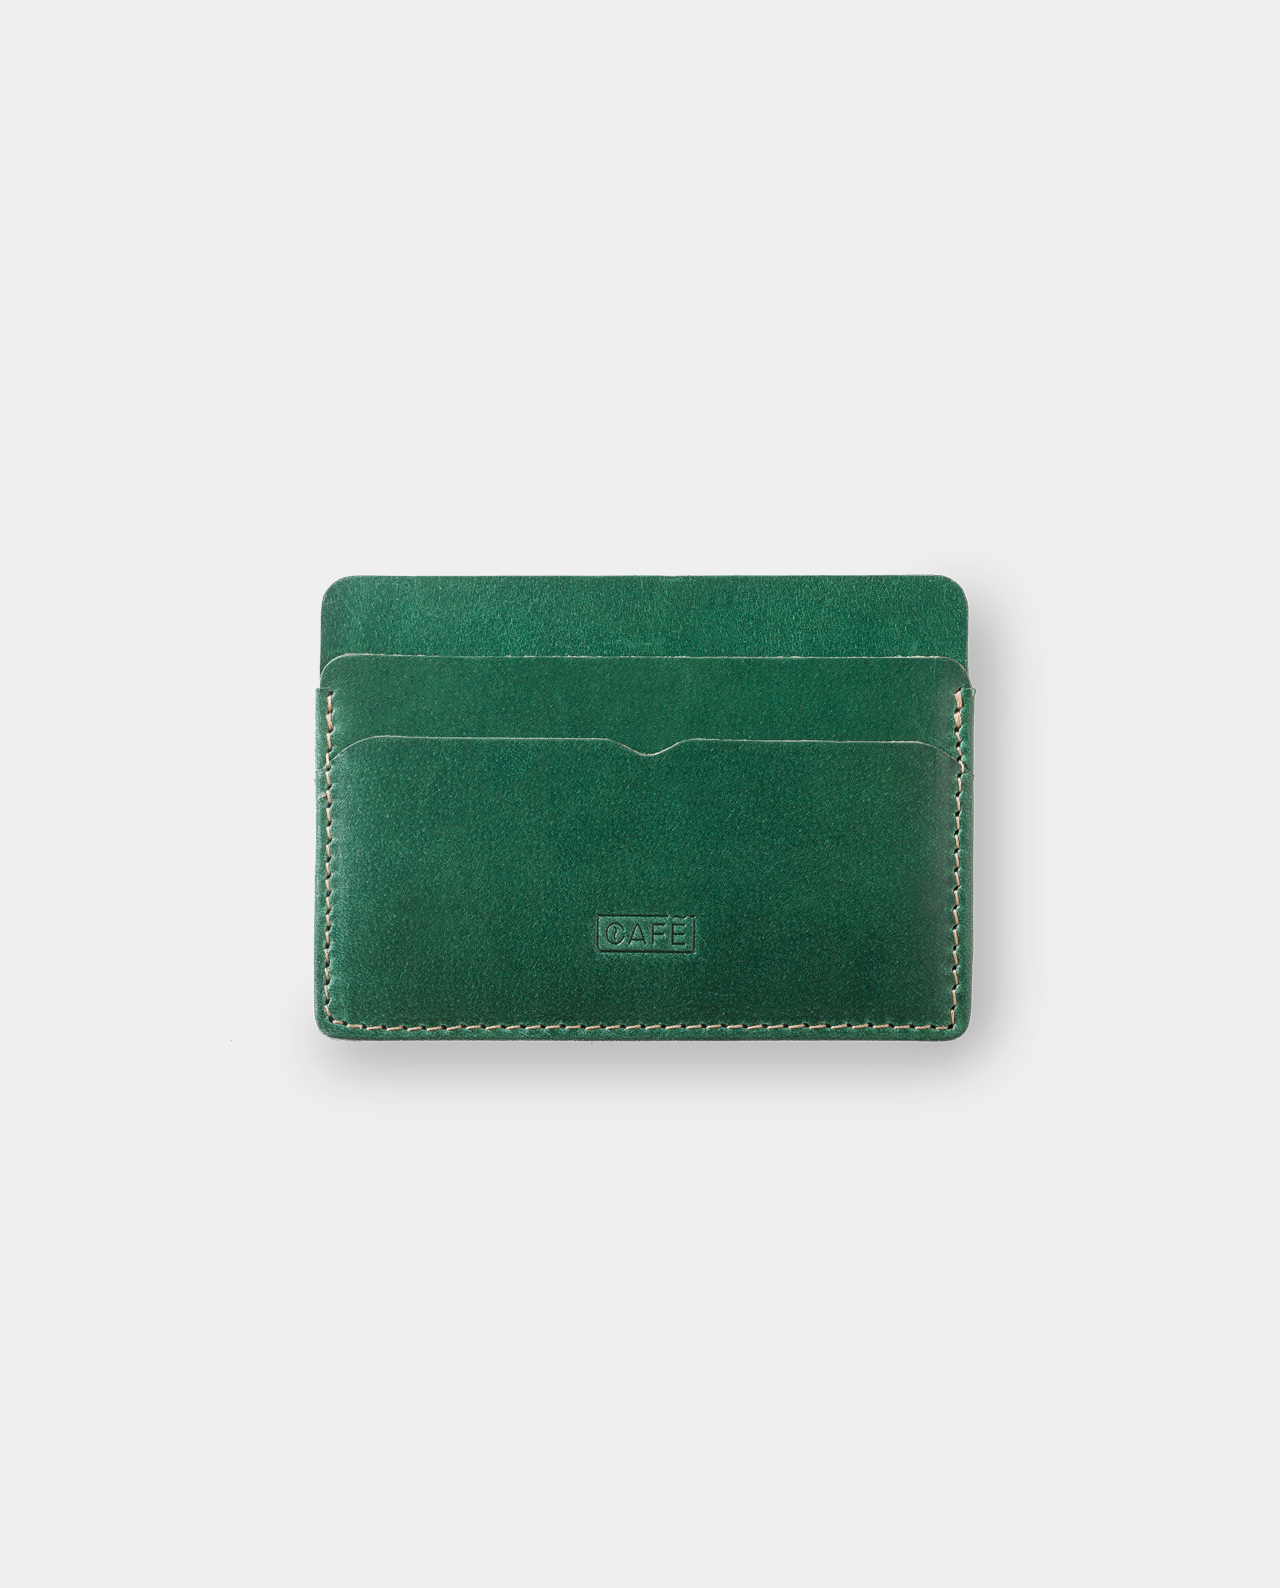 card holder green for cards and bills